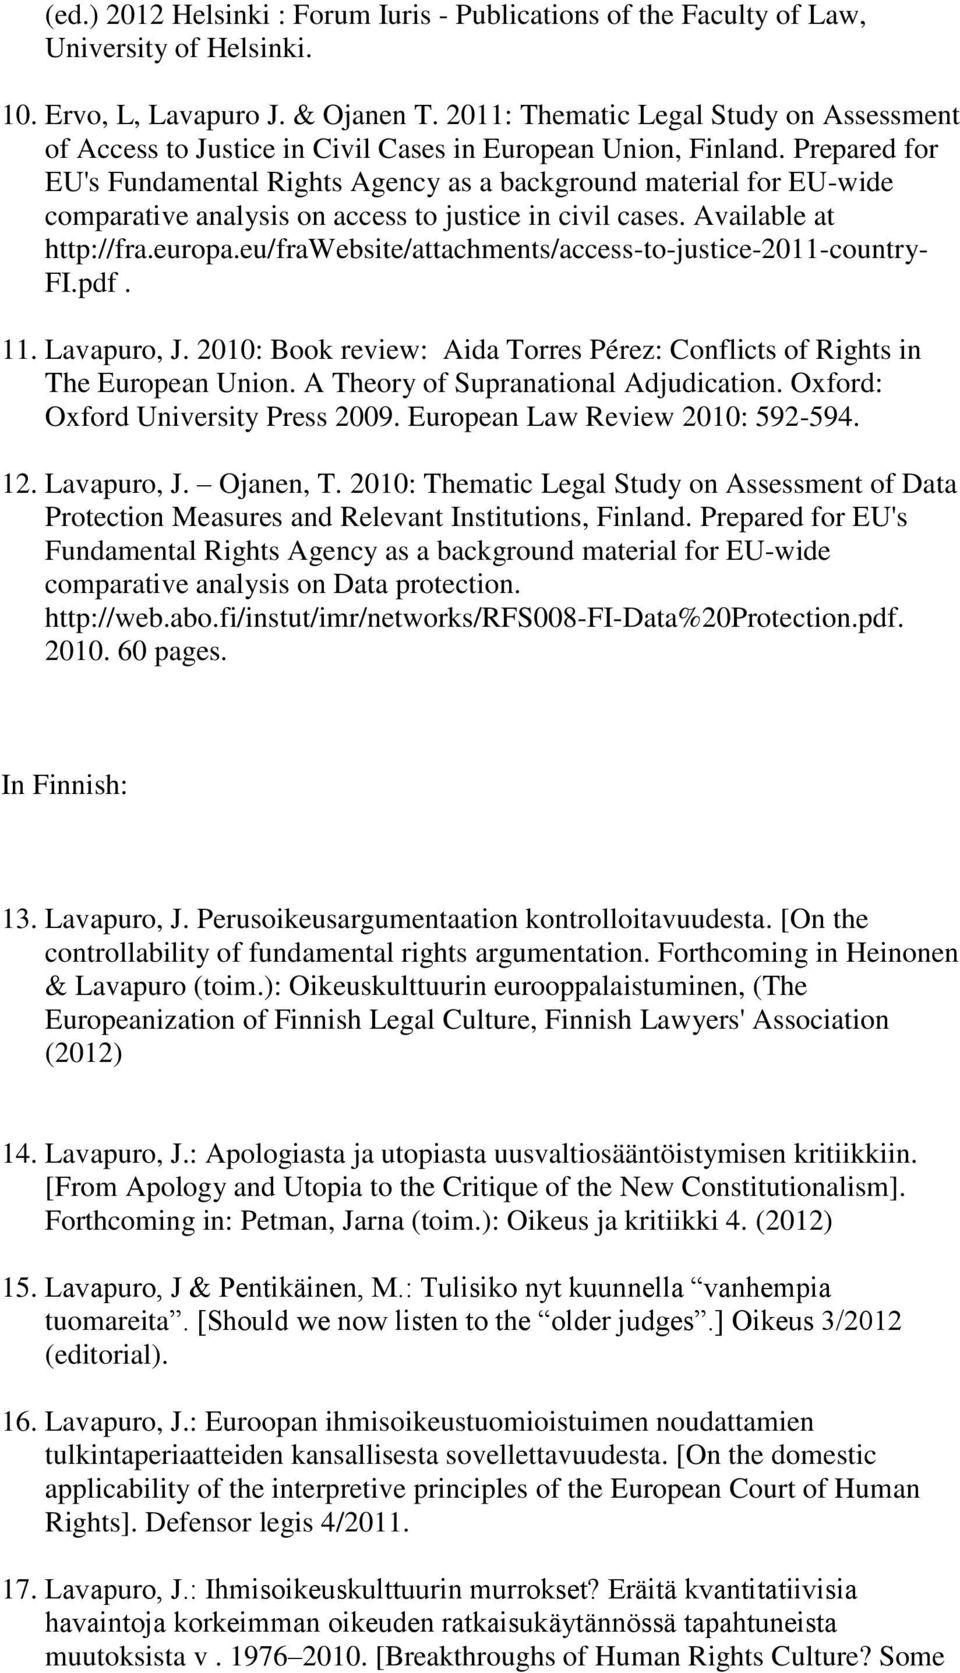 Prepared for EU's Fundamental Rights Agency as a background material for EU-wide comparative analysis on access to justice in civil cases. Available at http://fra.europa.